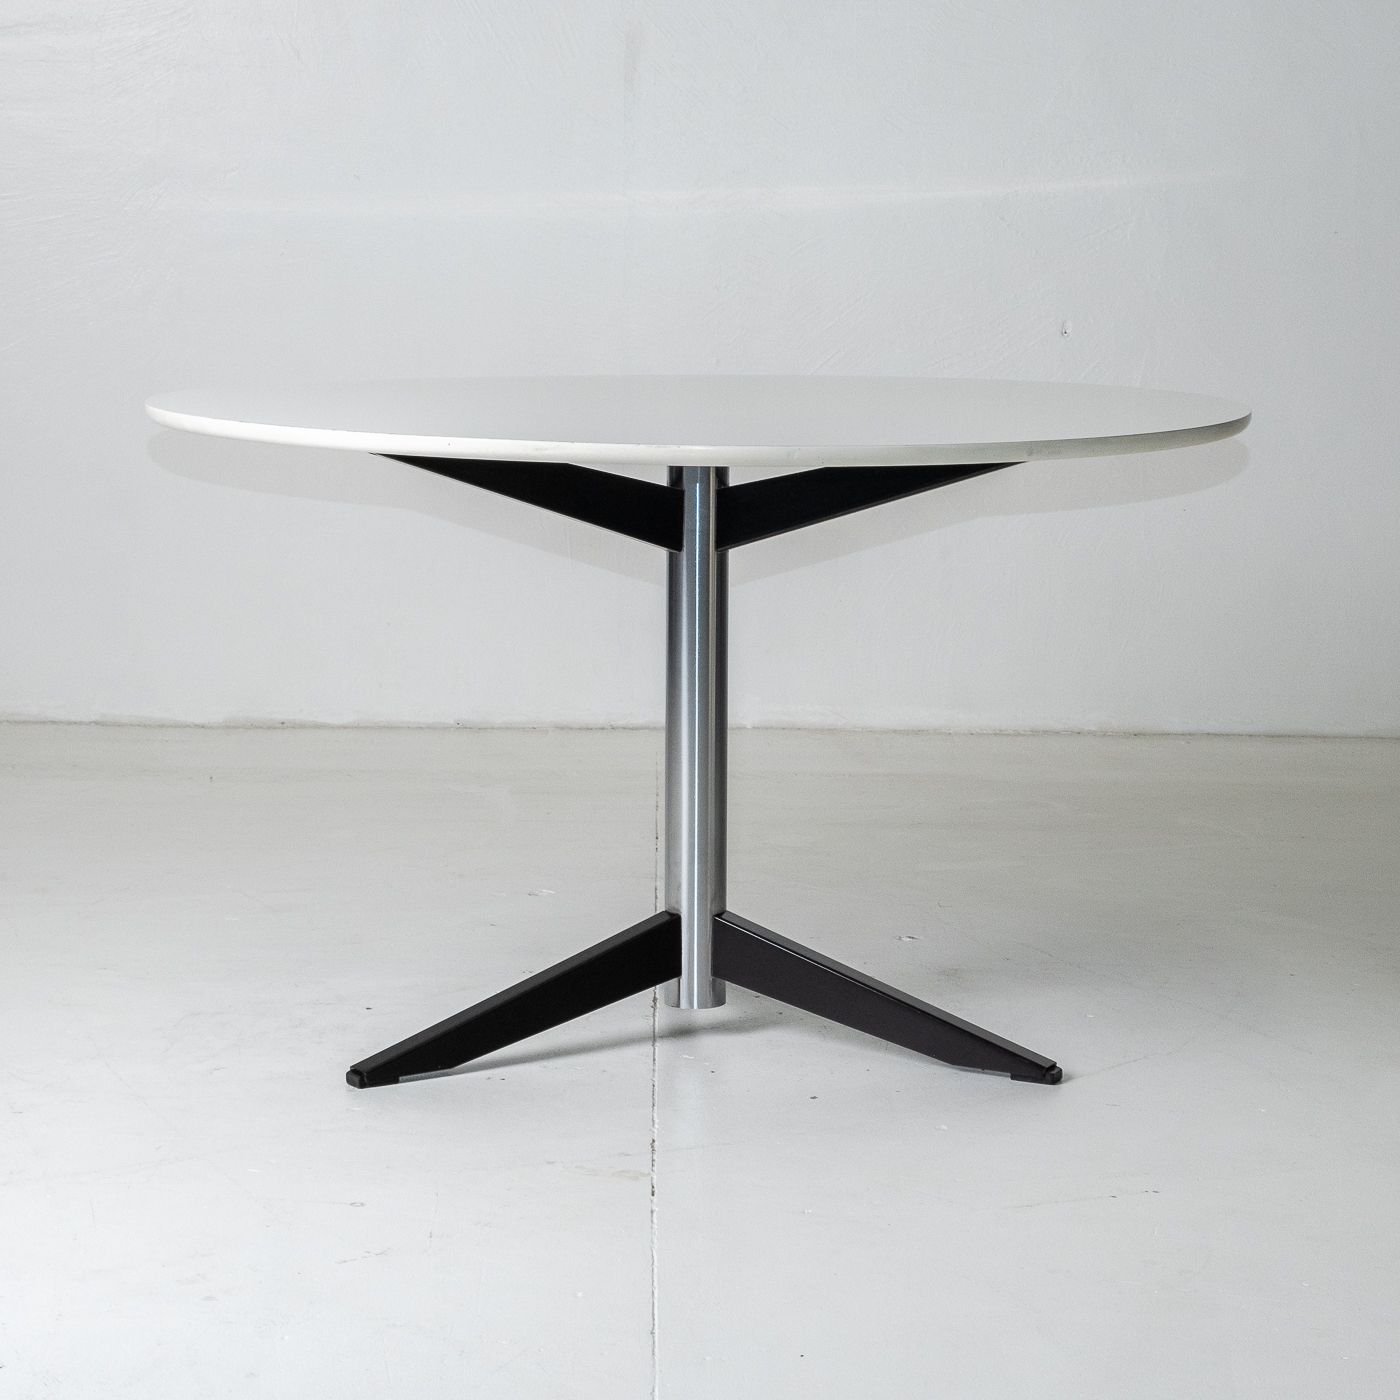 Model Te06 Dining Table By Martin Visser For 't Spectrum, 1960s, The Netherlands20